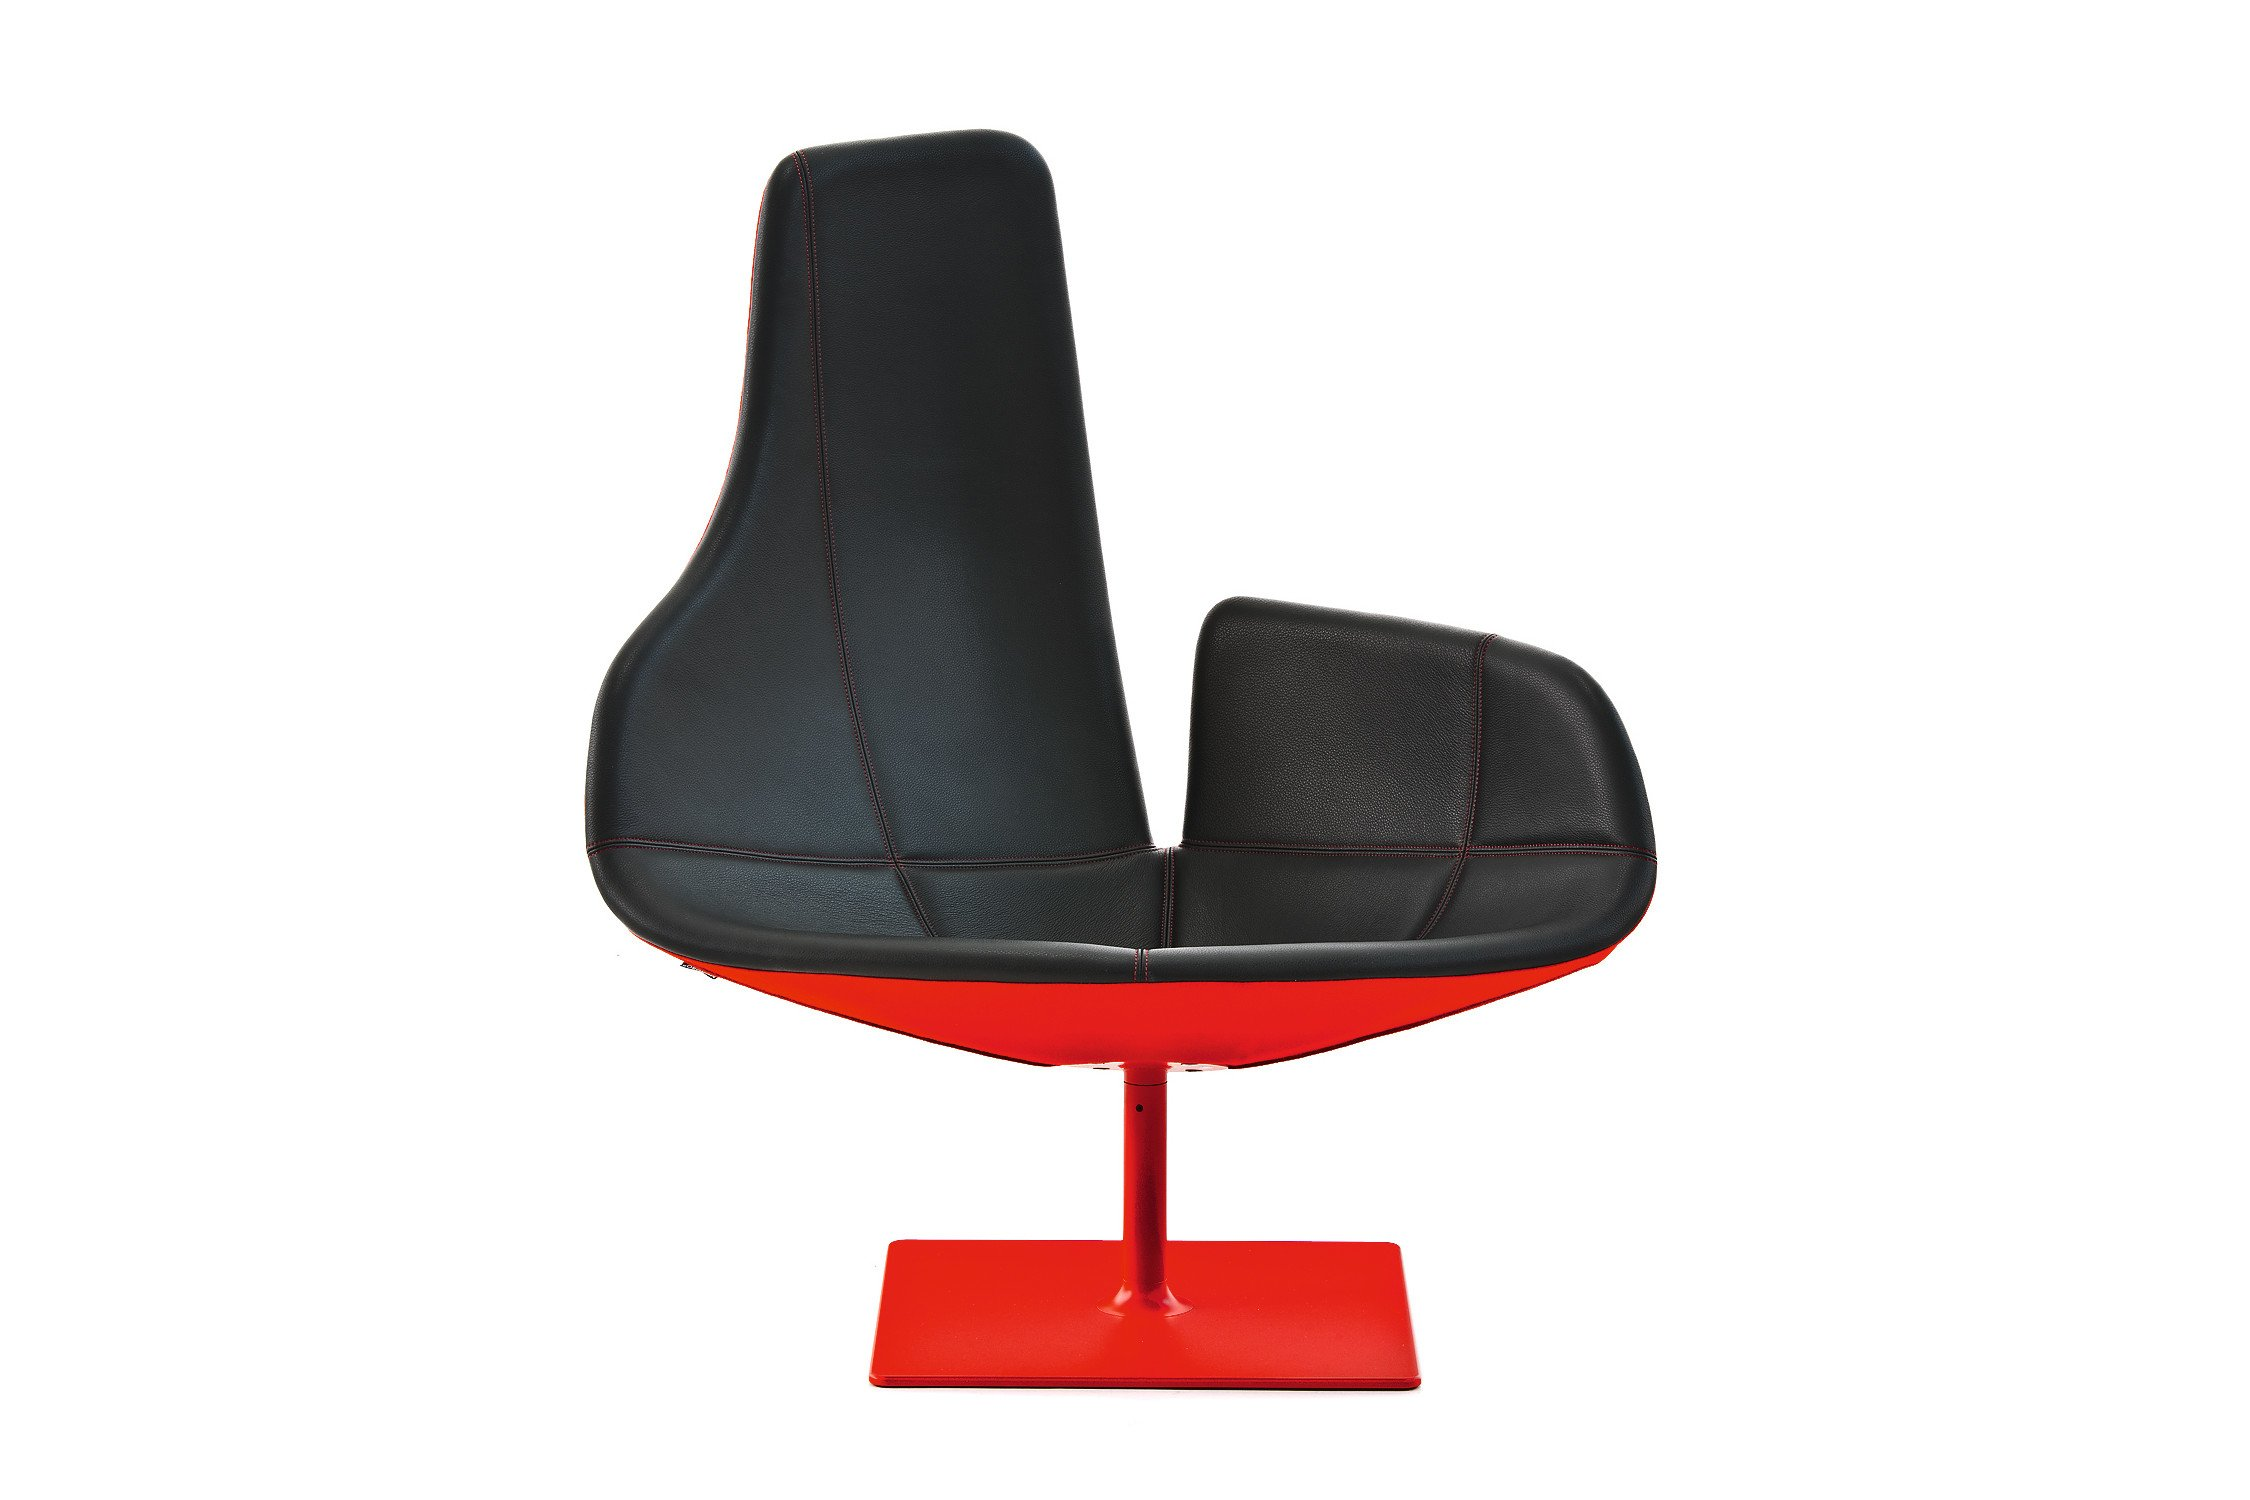 Moroso Fjord Fauteuil.Moroso Fjord Fauteuil